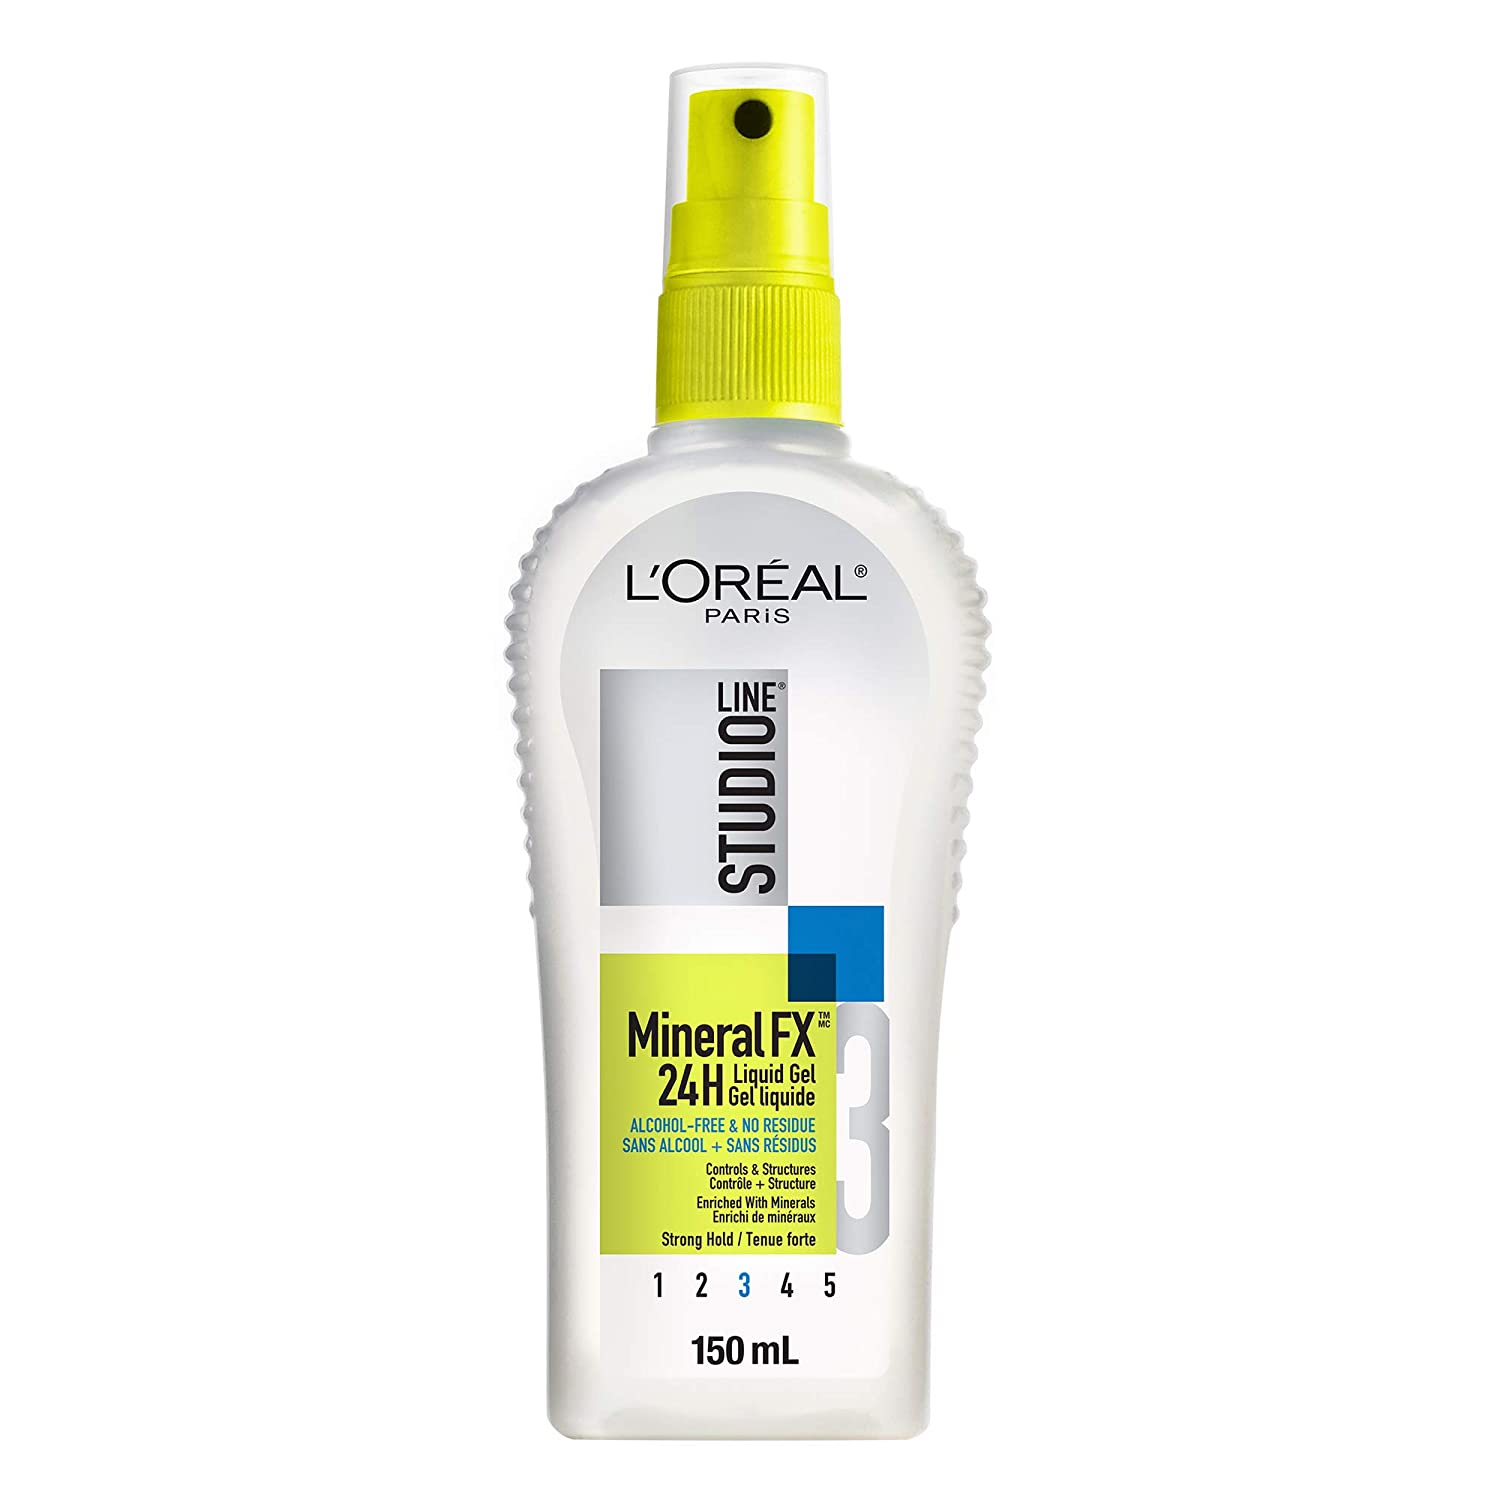 L'Oreal Paris Studio Line MineralFX 24h Strong Hold Liquid Gel, 150-Milliliter L' Oreal Paris